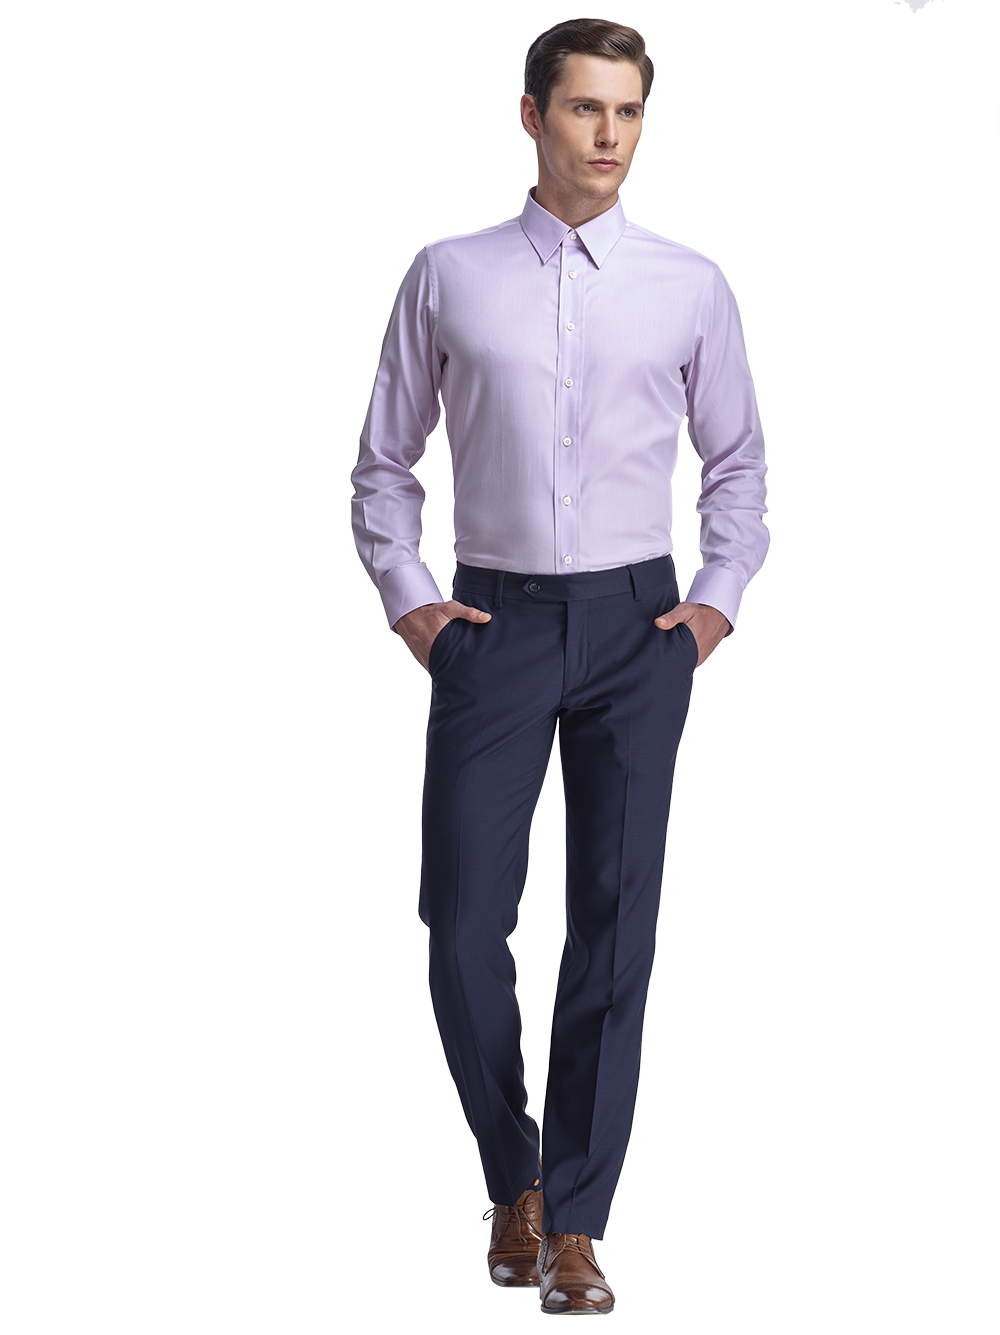 Men Suit Png image #9487